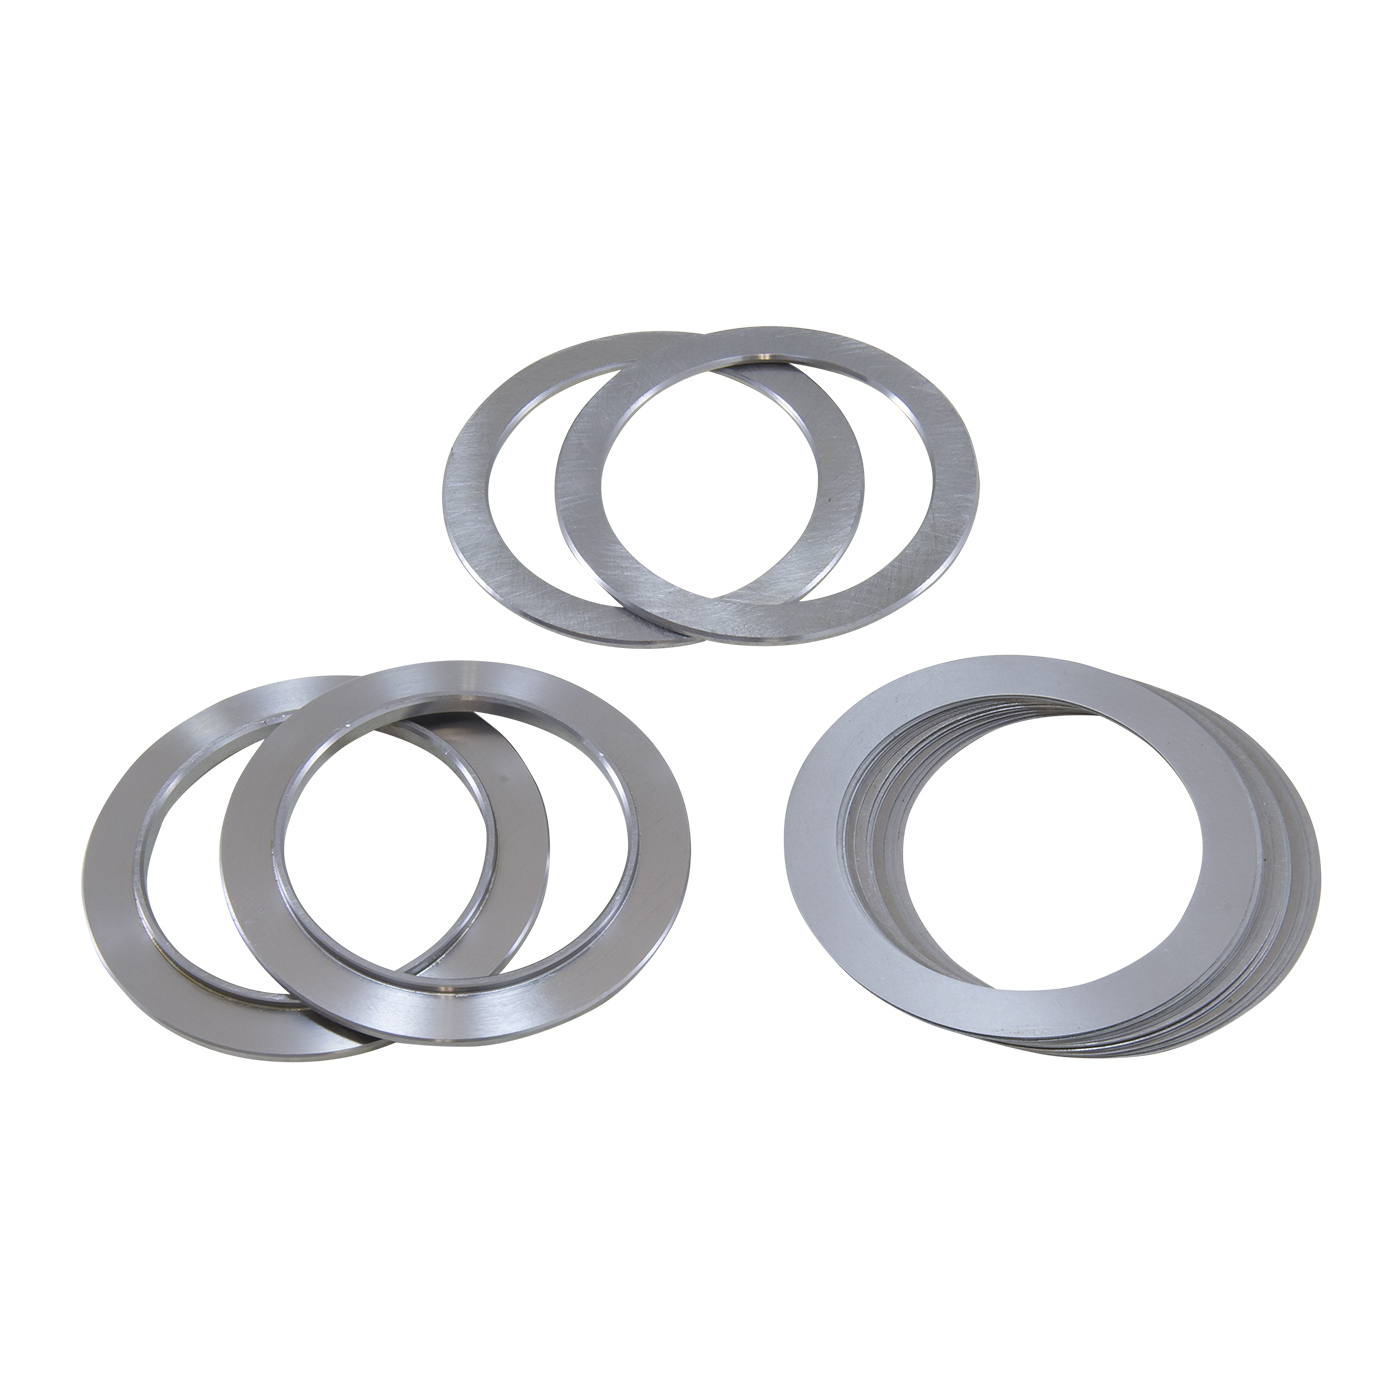 SK SSF9.75 - Super Carrier Shim kit for Ford 9.75